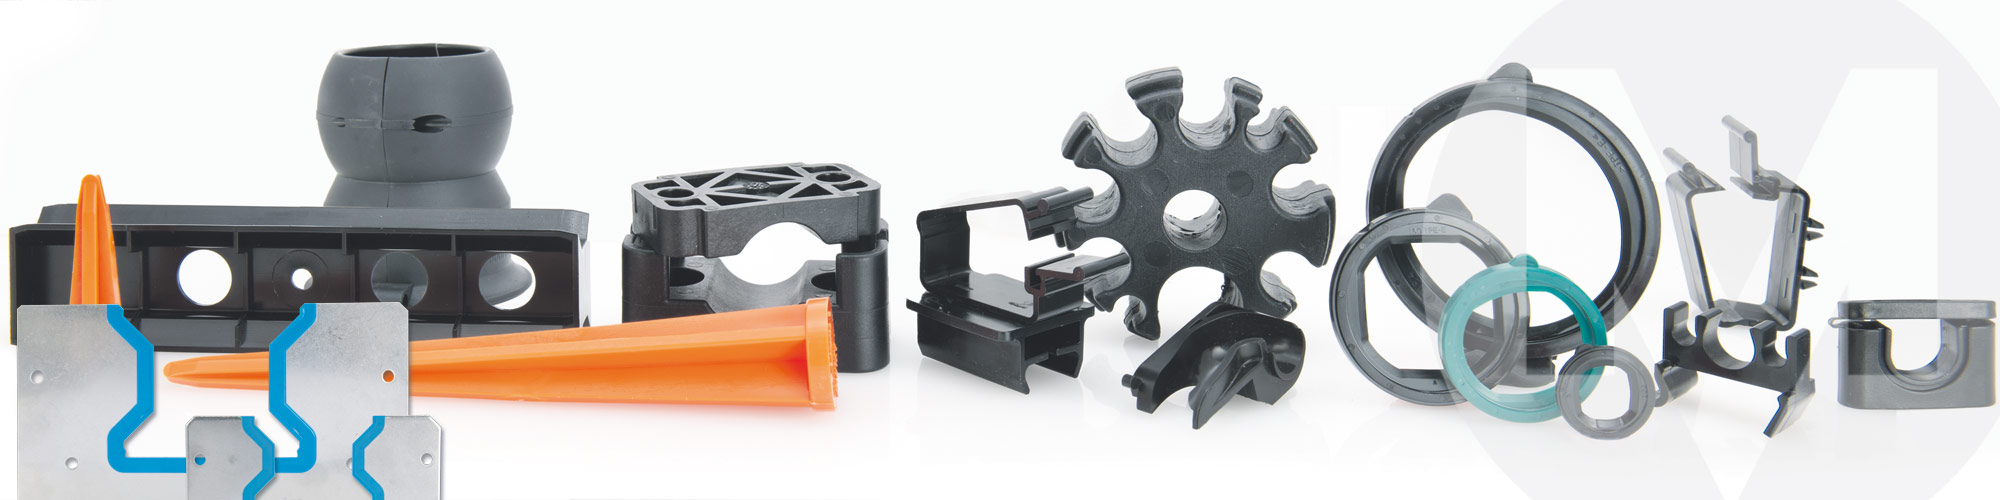 Plastic Injection Moulding Parts and Moulded Metal Components